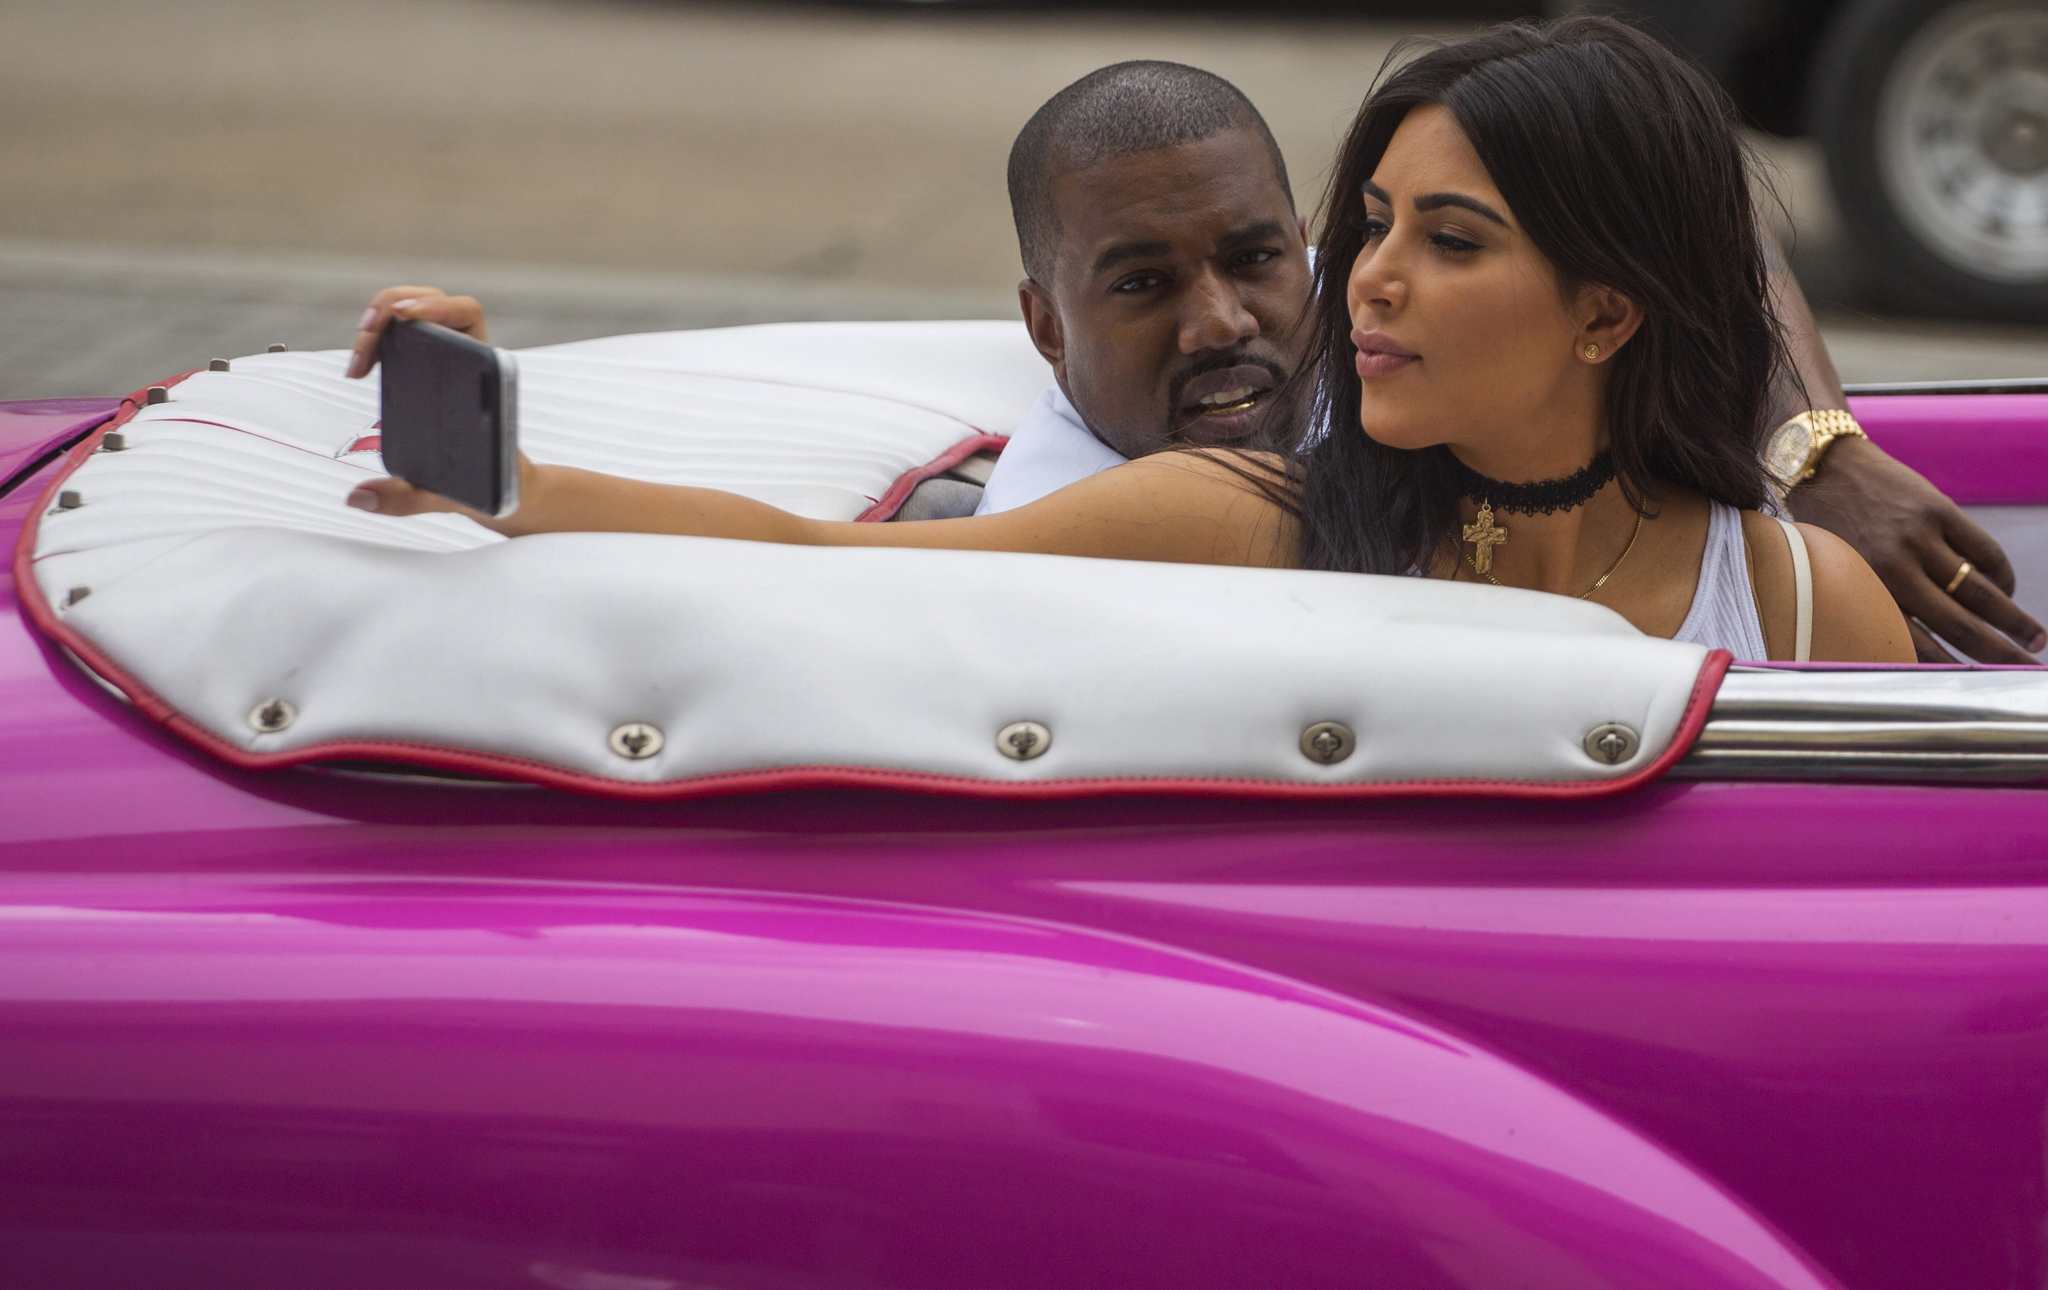 American reality-show star Kim Kardashian takes a selfie as she rides on a classic car next to her husband, rap superstar Kayne West in Havana, Cuba, Wednesday, May 4, 2016